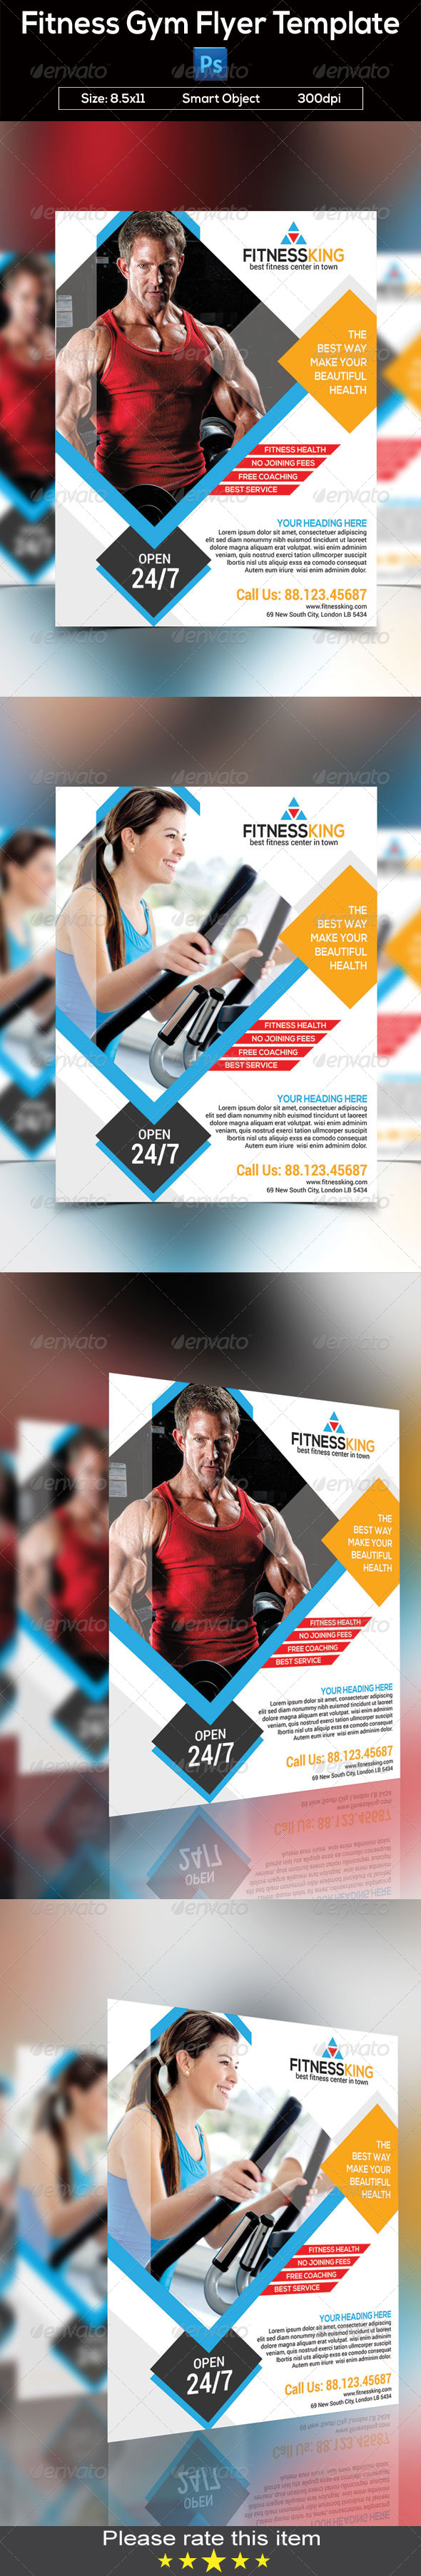 GraphicRiver Fitness Gym Flyer Template 8372566